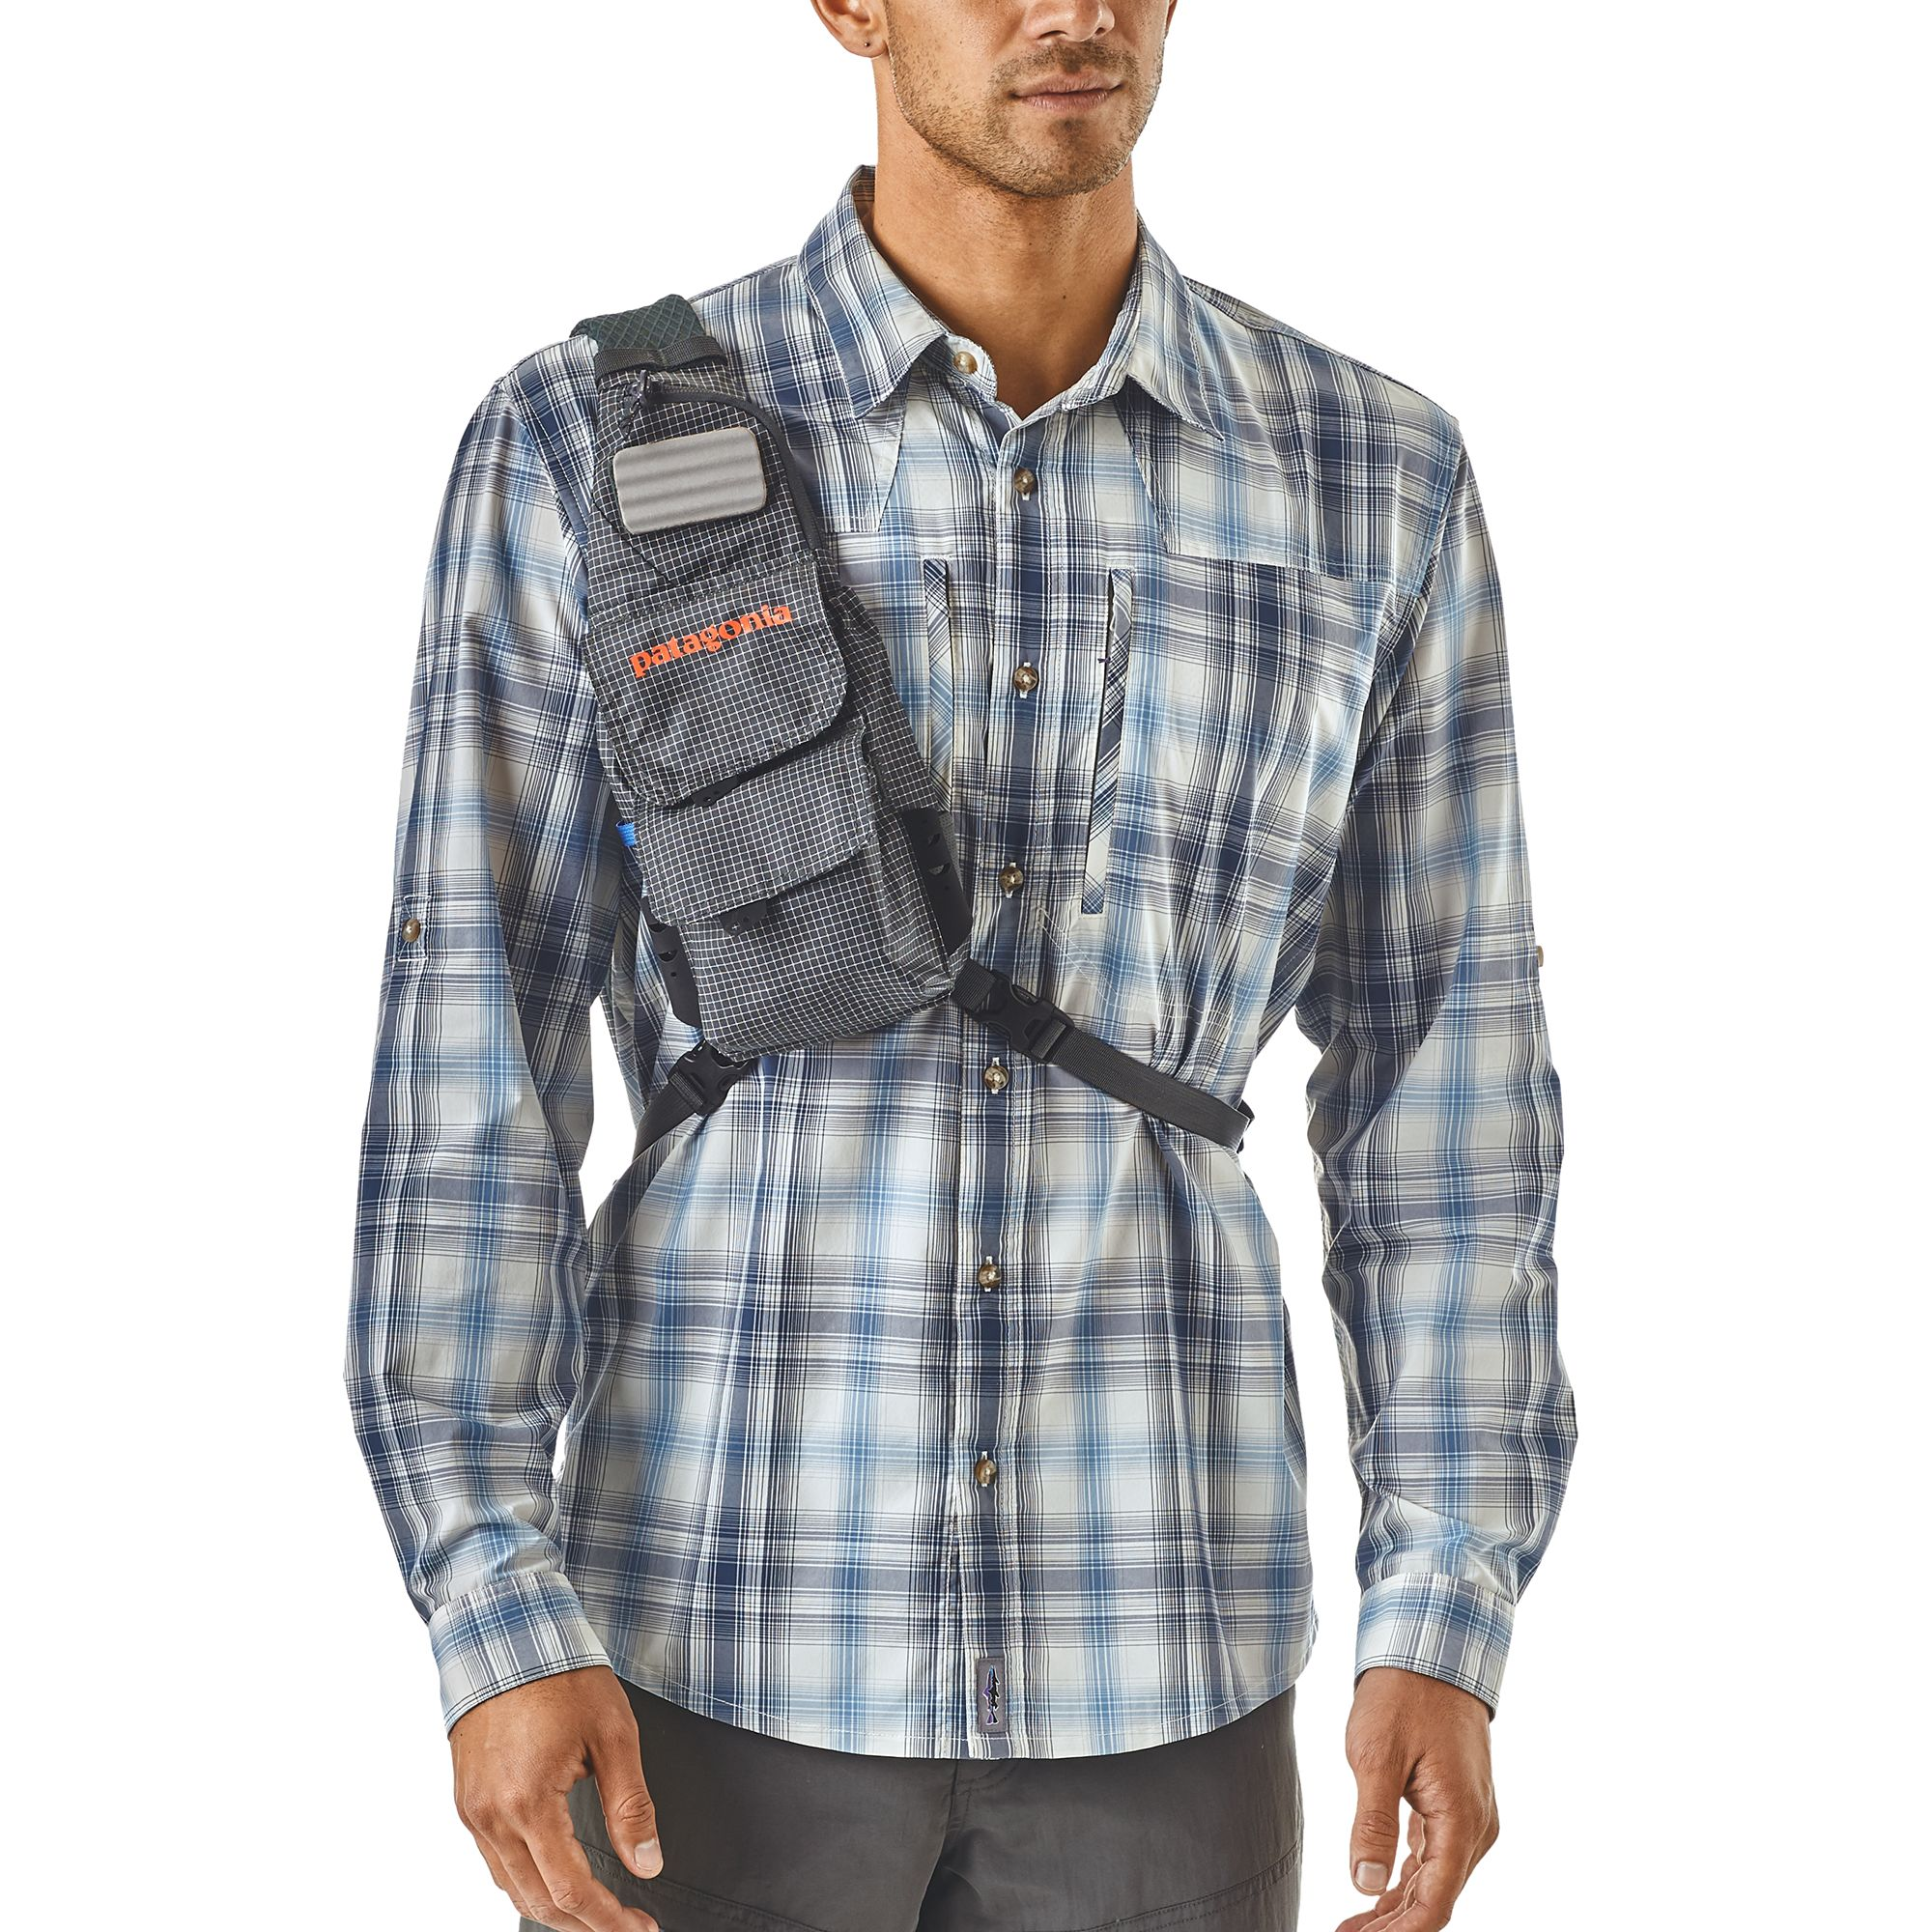 Vest Front Sling Patagonia - Ready to fish